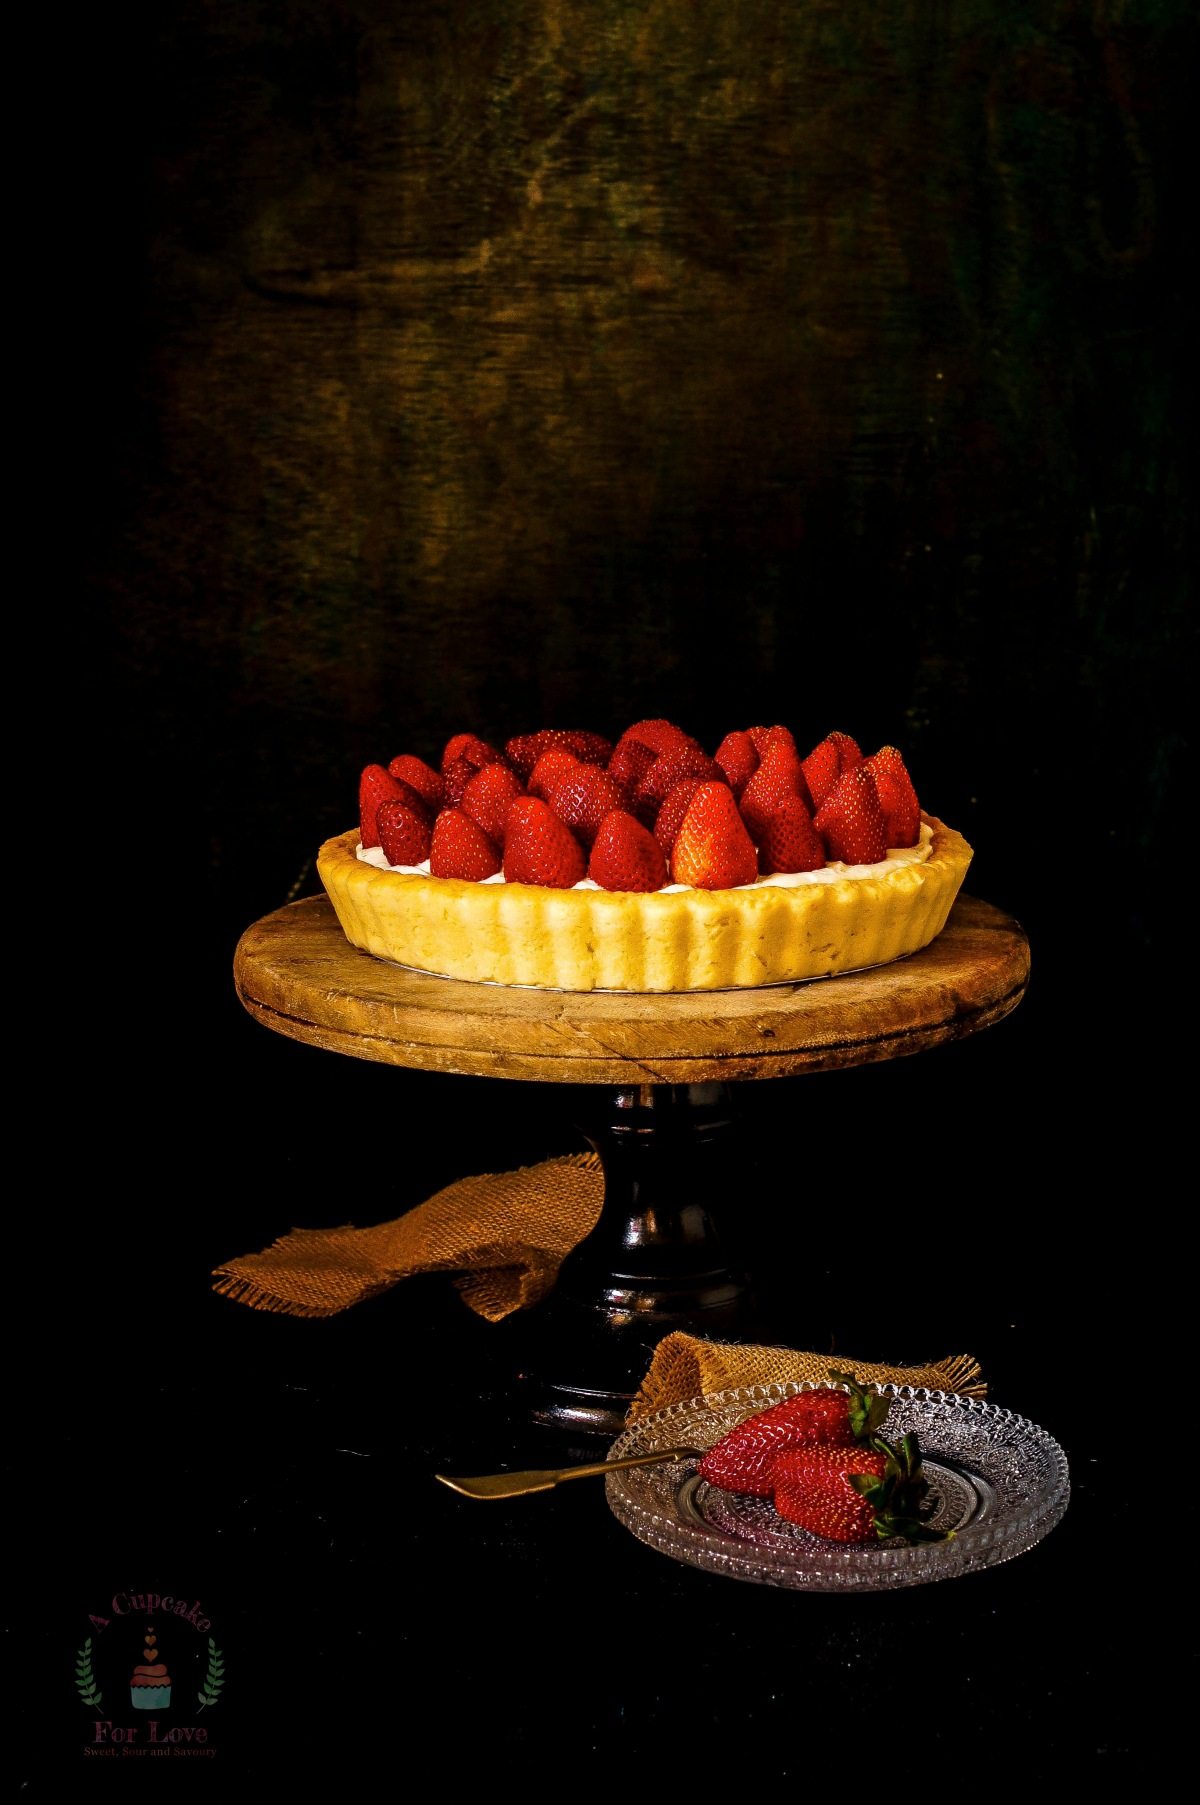 Strawberry and Cream Cheese Tart